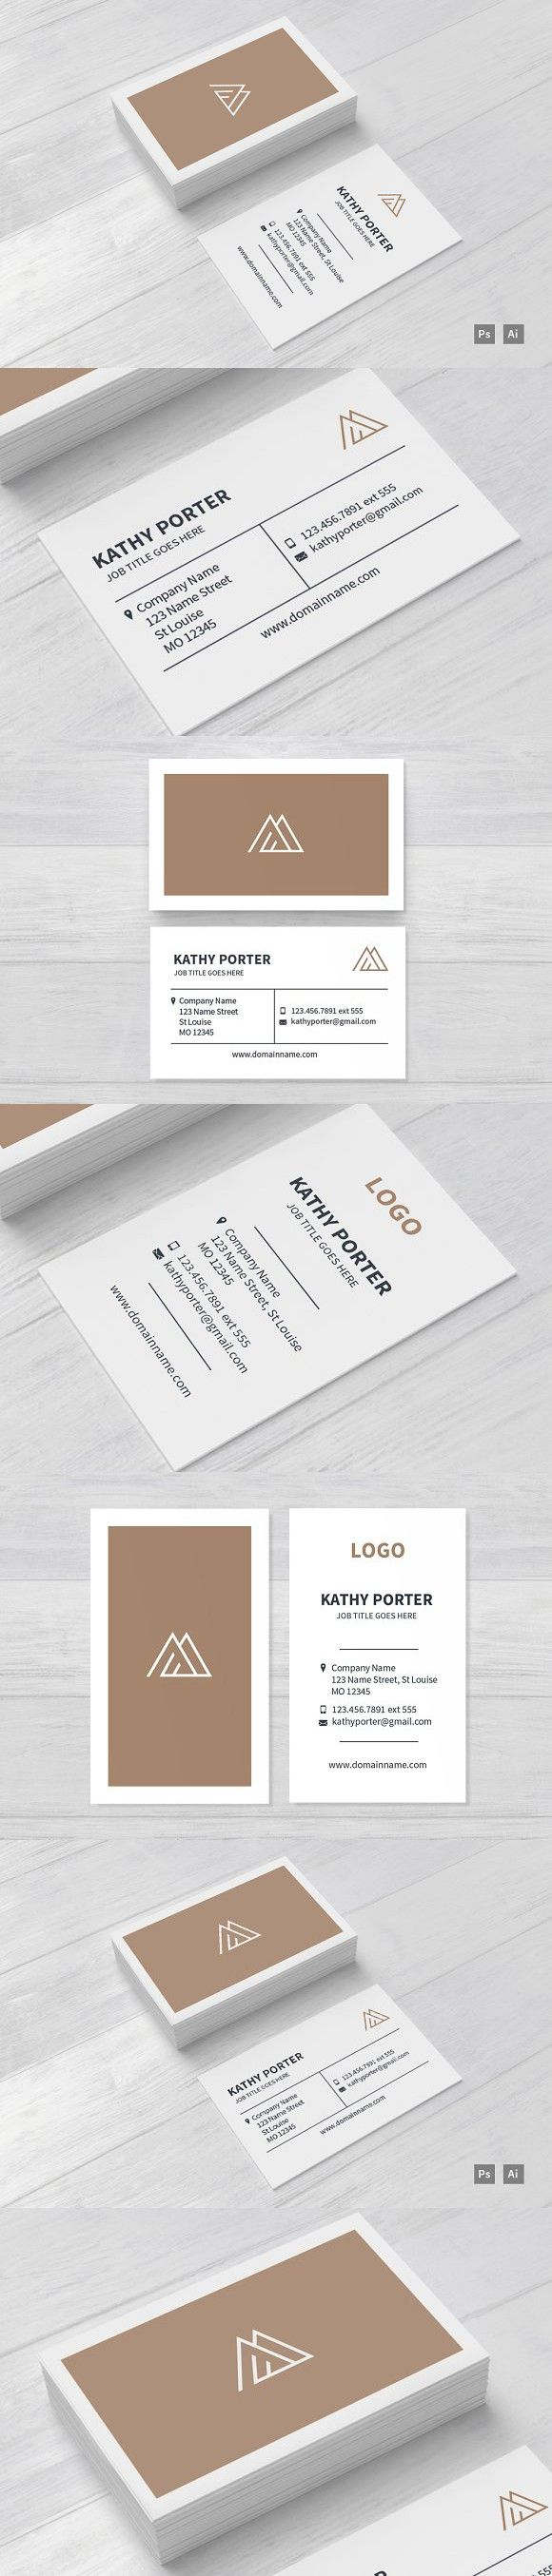 22 best logos images on pinterest clip art logo designing and books am business card business card templates magicingreecefo Gallery